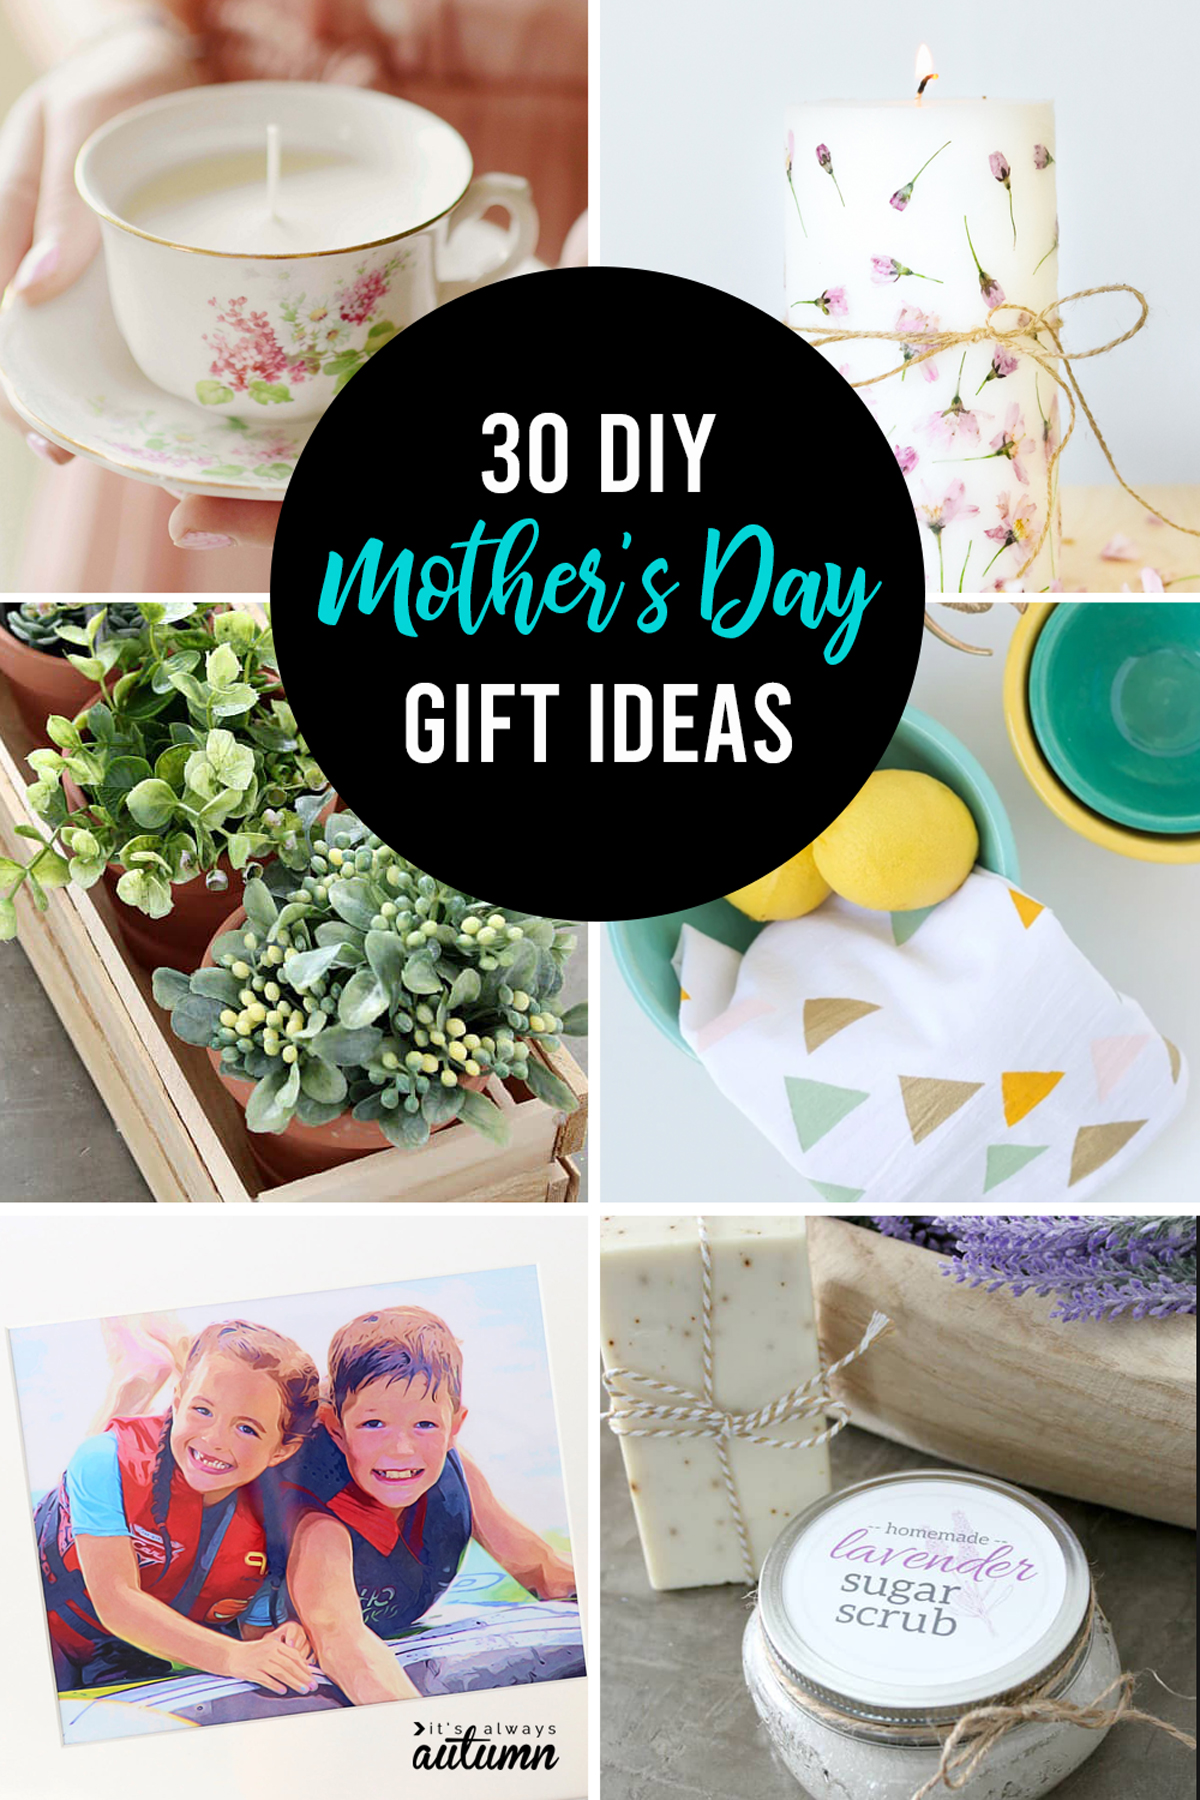 text: 30 DIY Mother's Day gift ideas and collage of photos